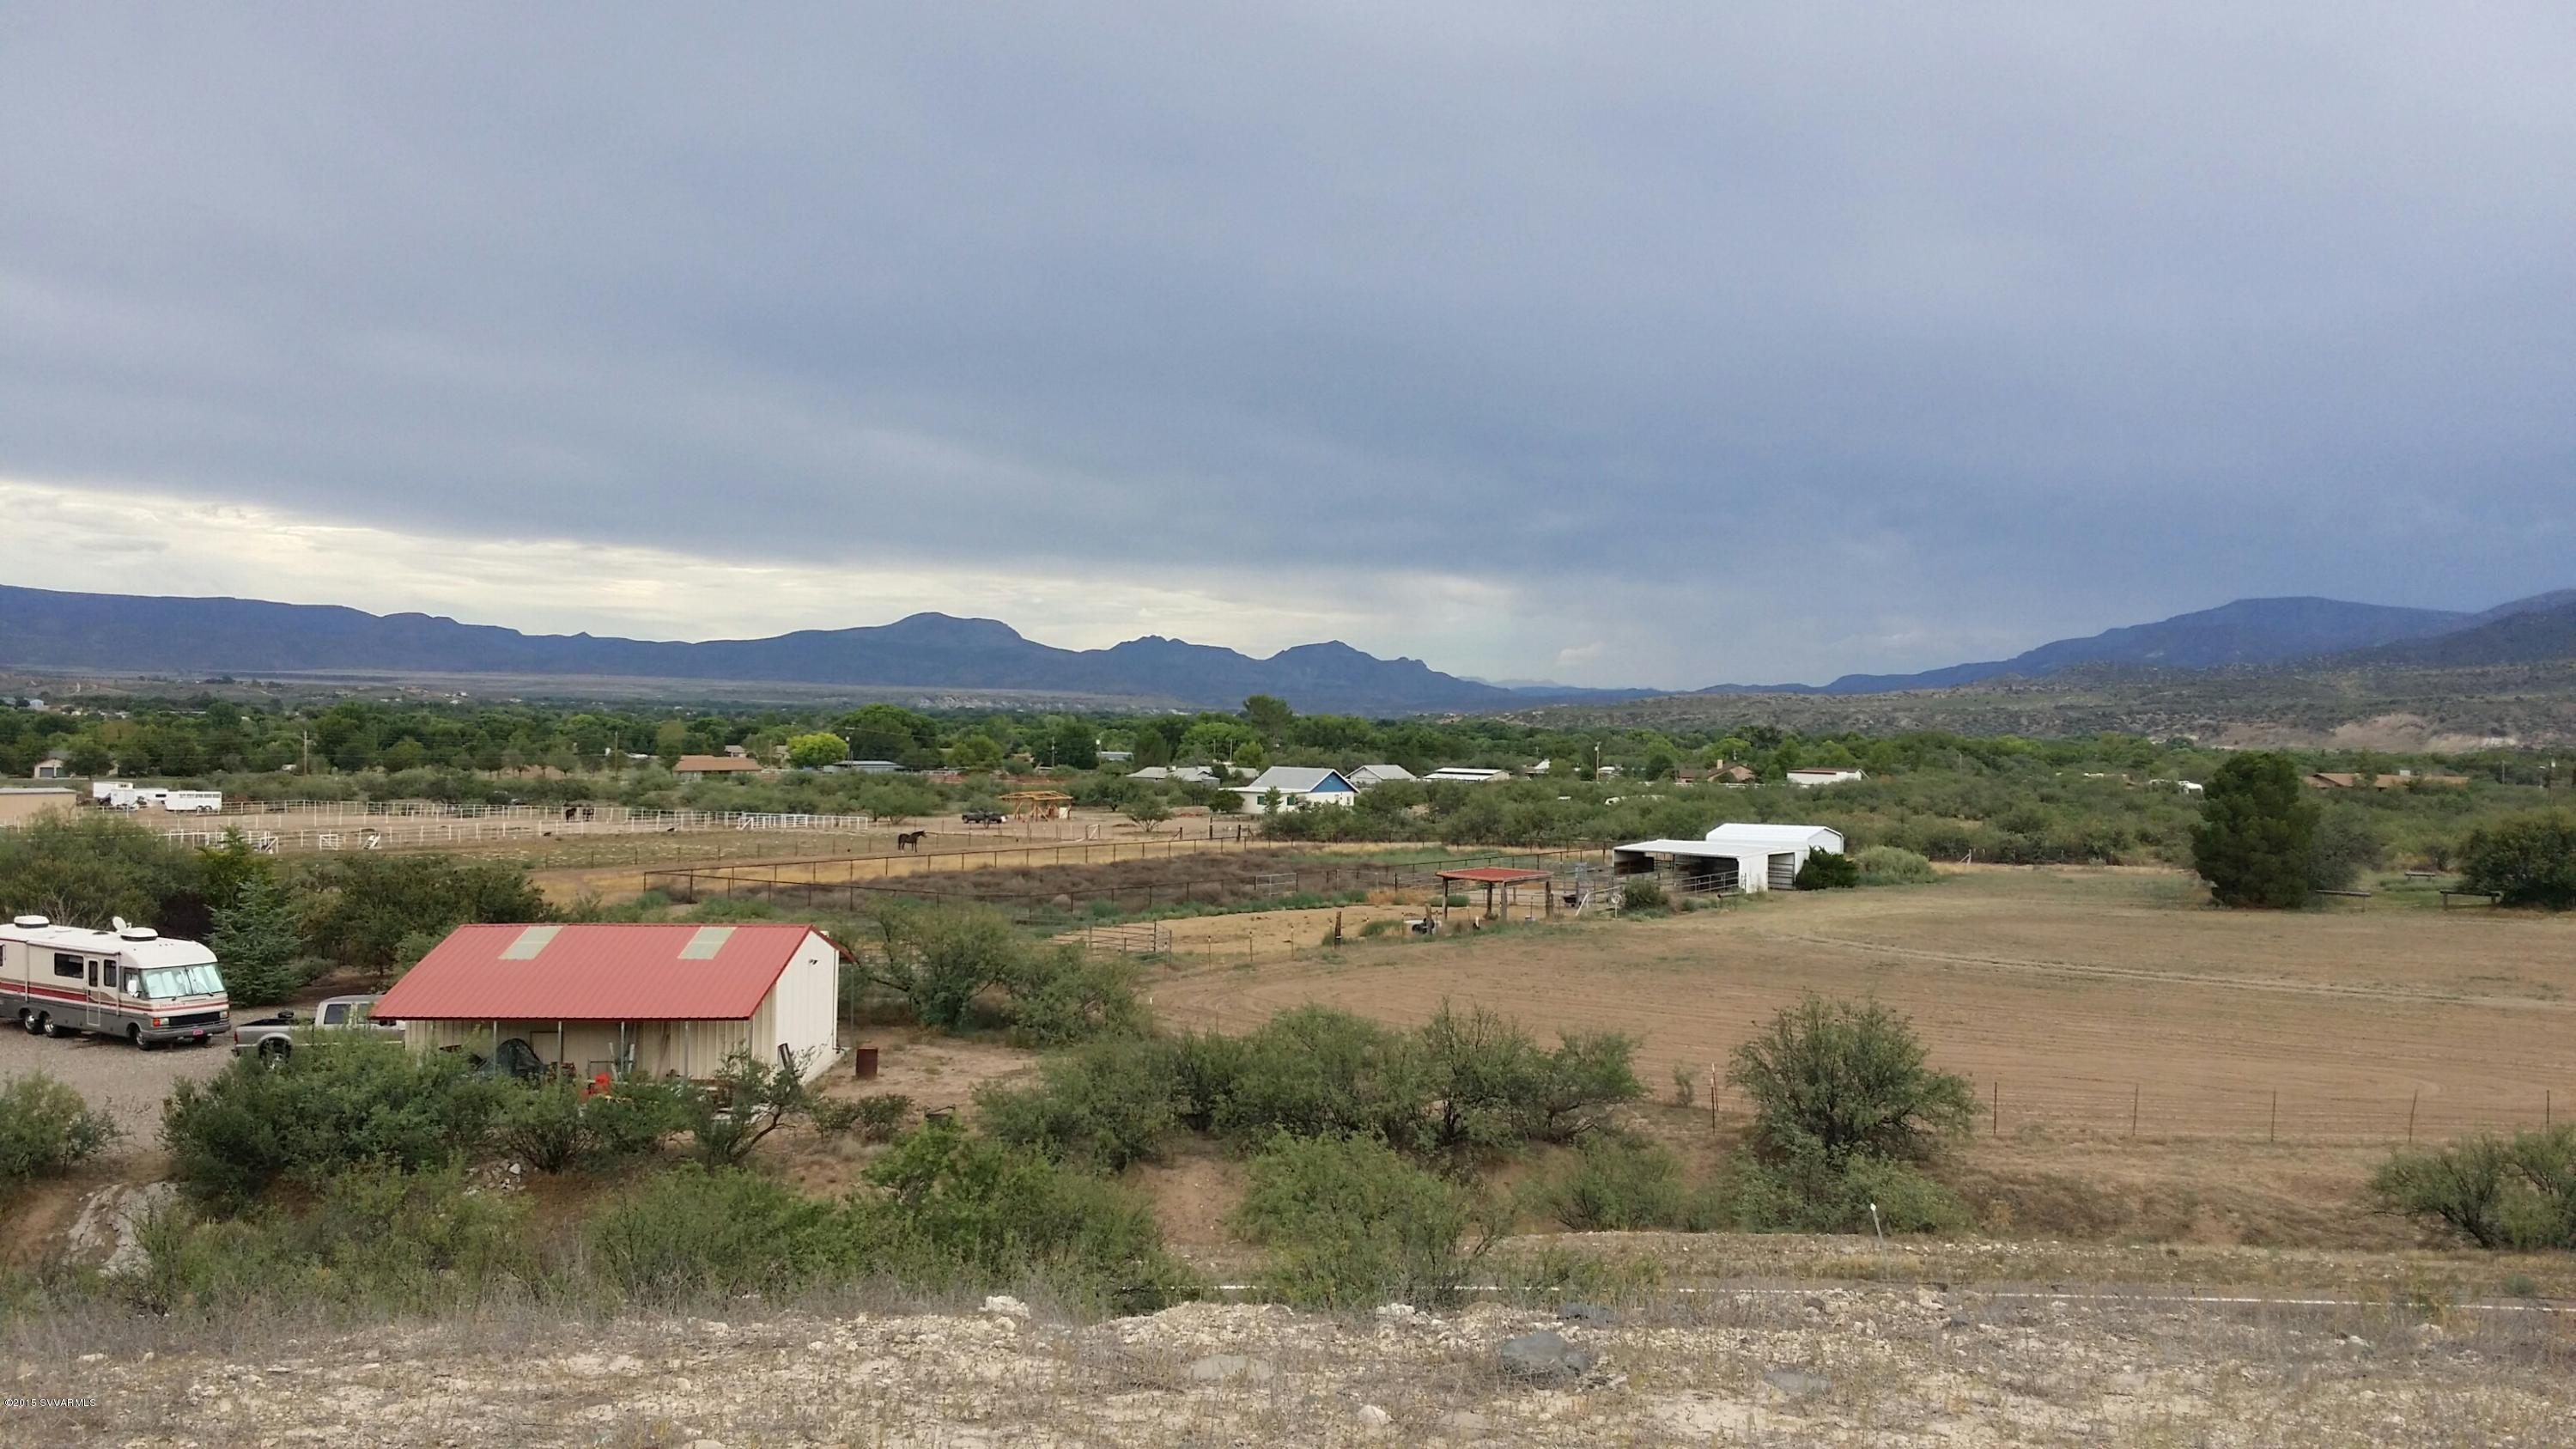 972 W Salt Mine Camp Verde, AZ 86322